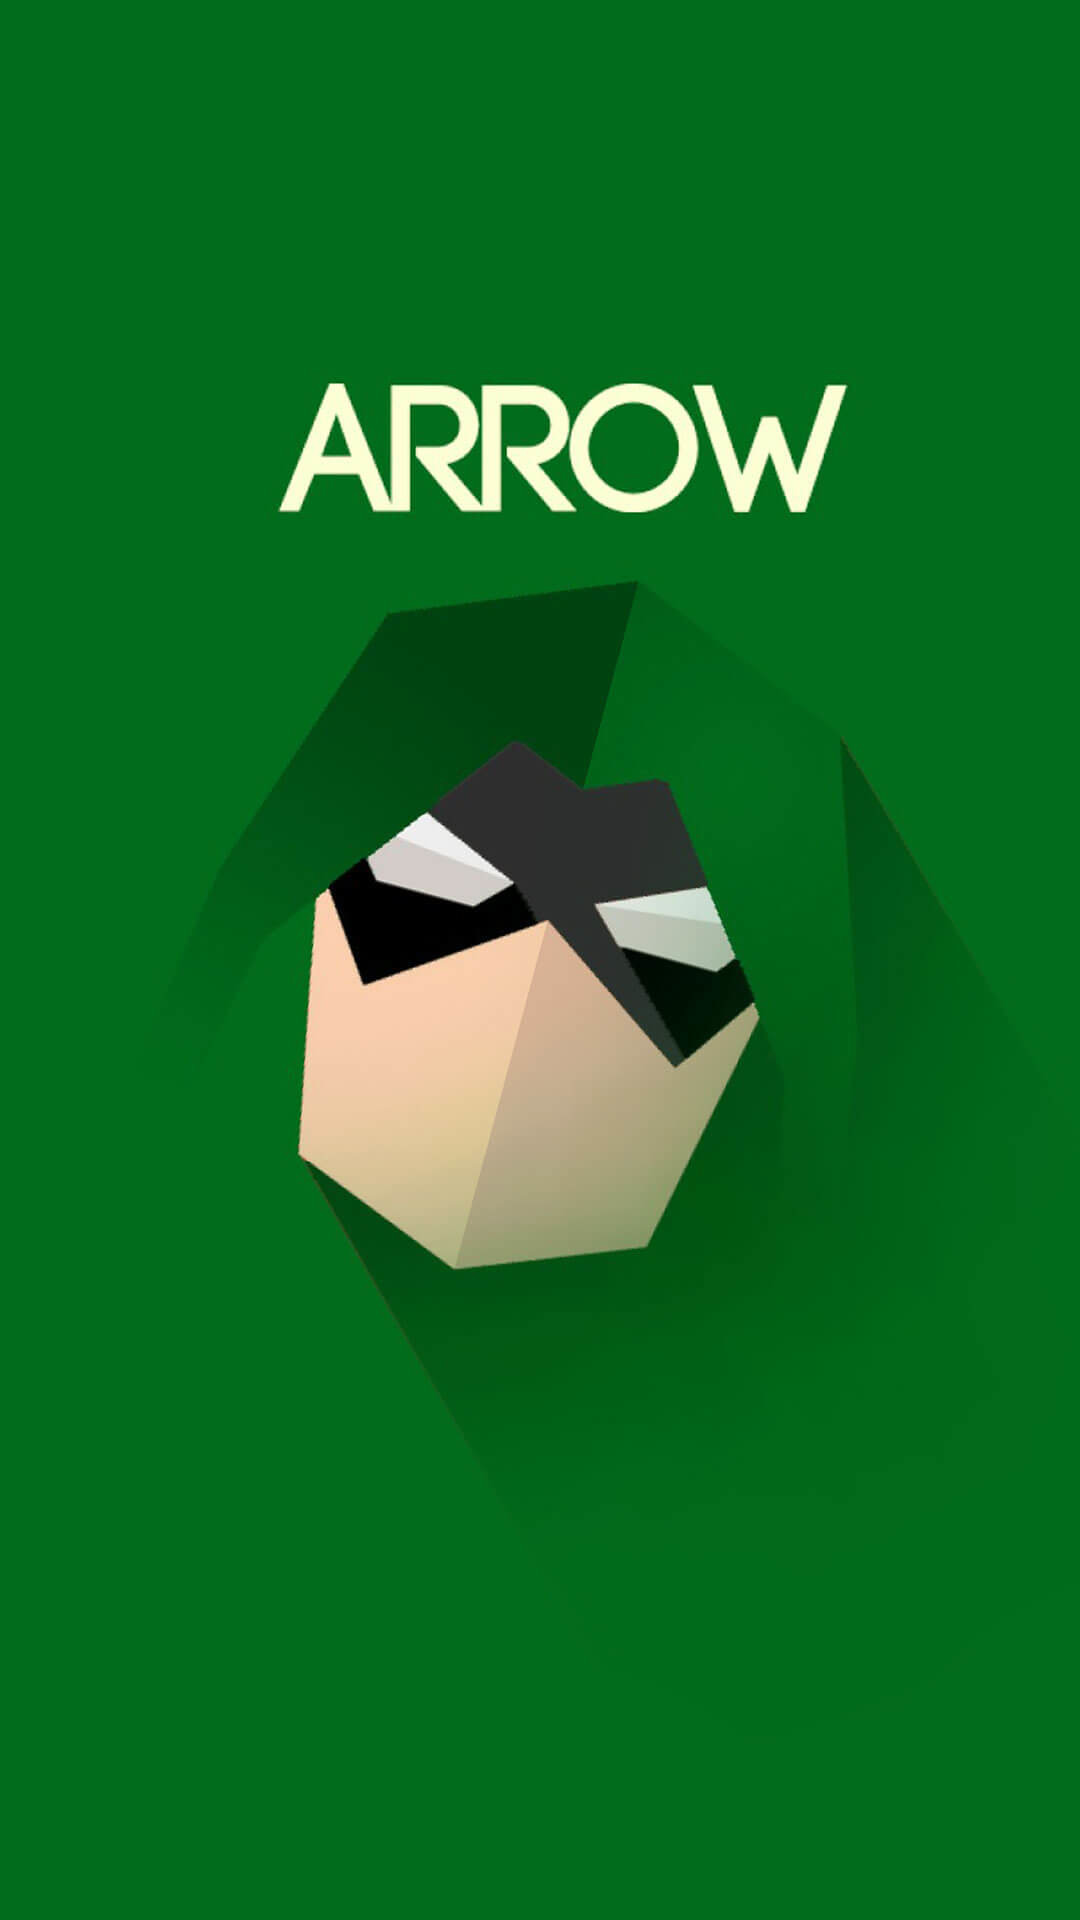 The Arrow Wallpaper For iPhone